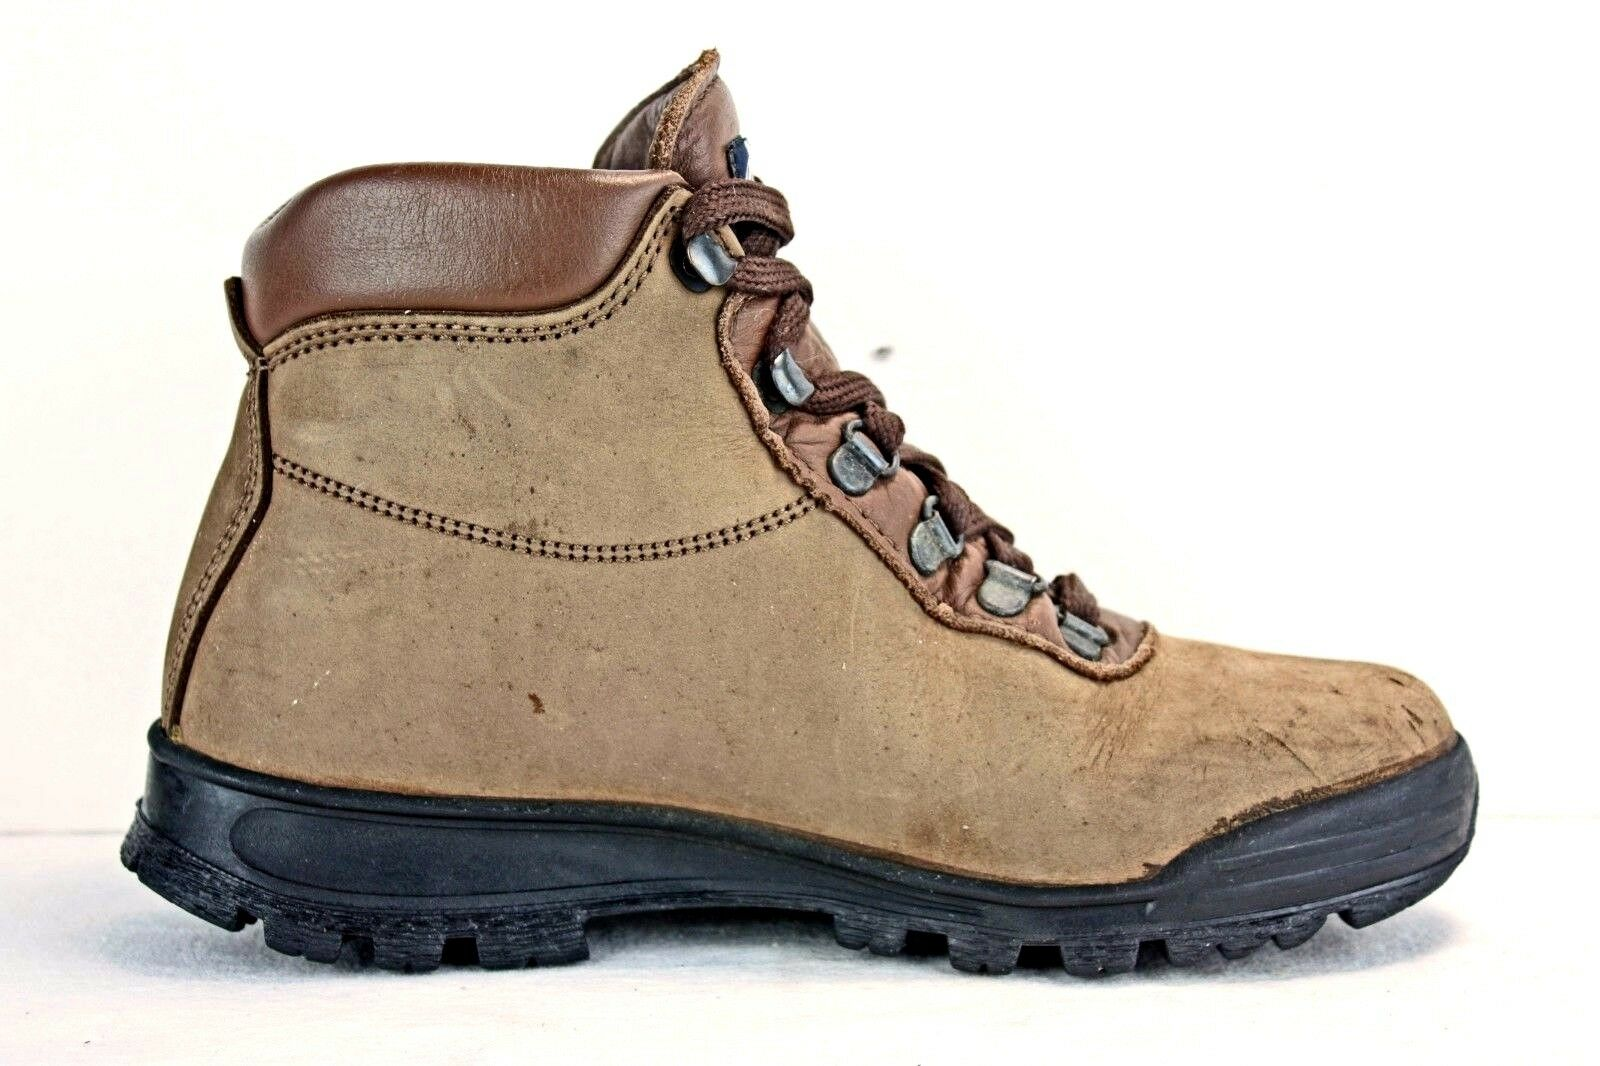 Vasque Damenschuhe Stiefel sz 6 M Waterproof Hiking Hiking Trail Gore-Tex Nubuck Hiking Waterproof  8093b8